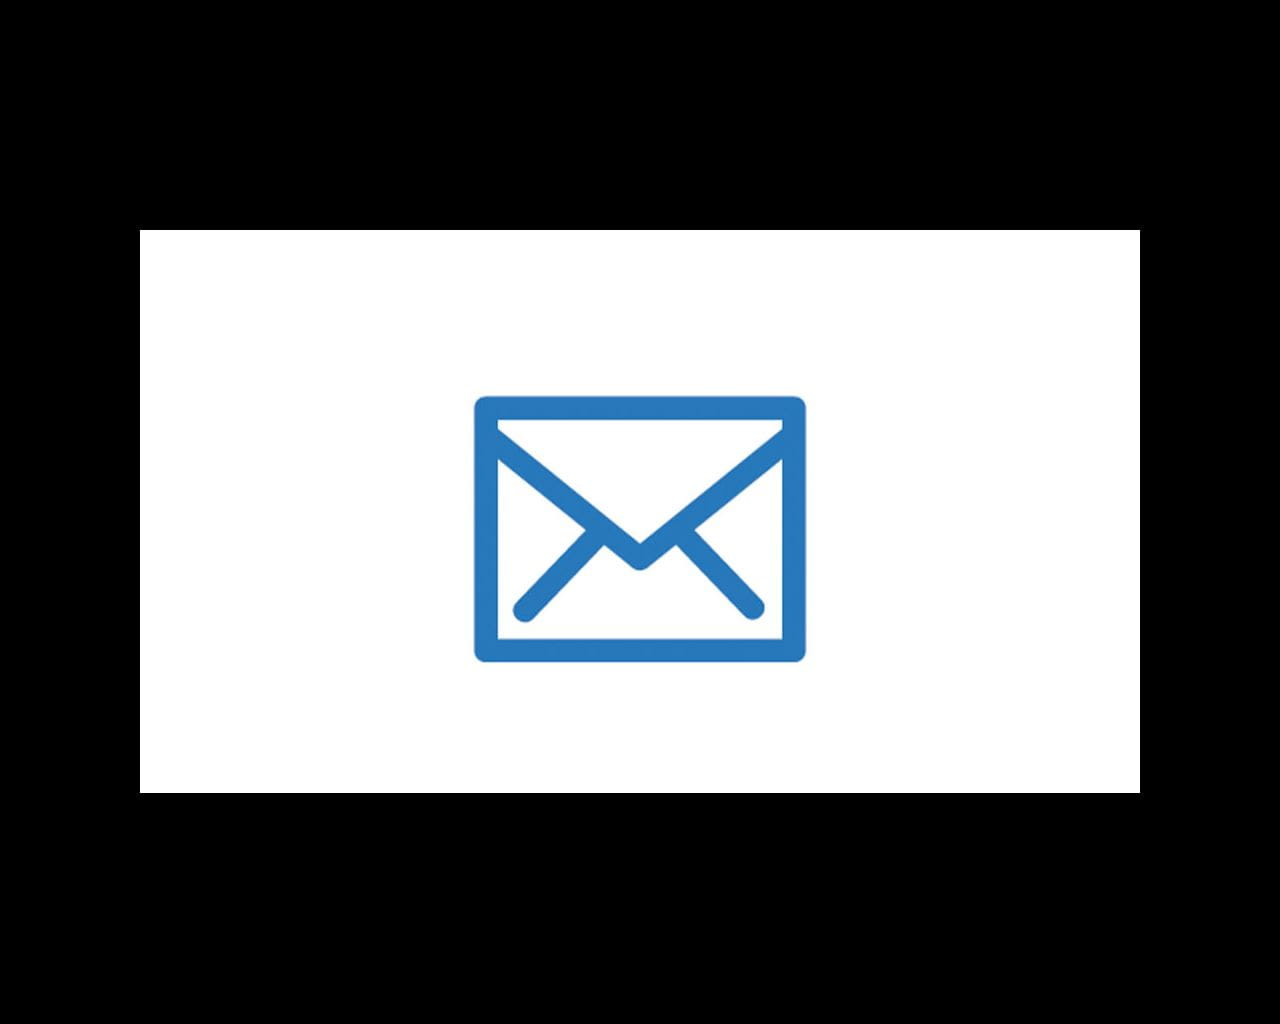 MyCare send a message icon